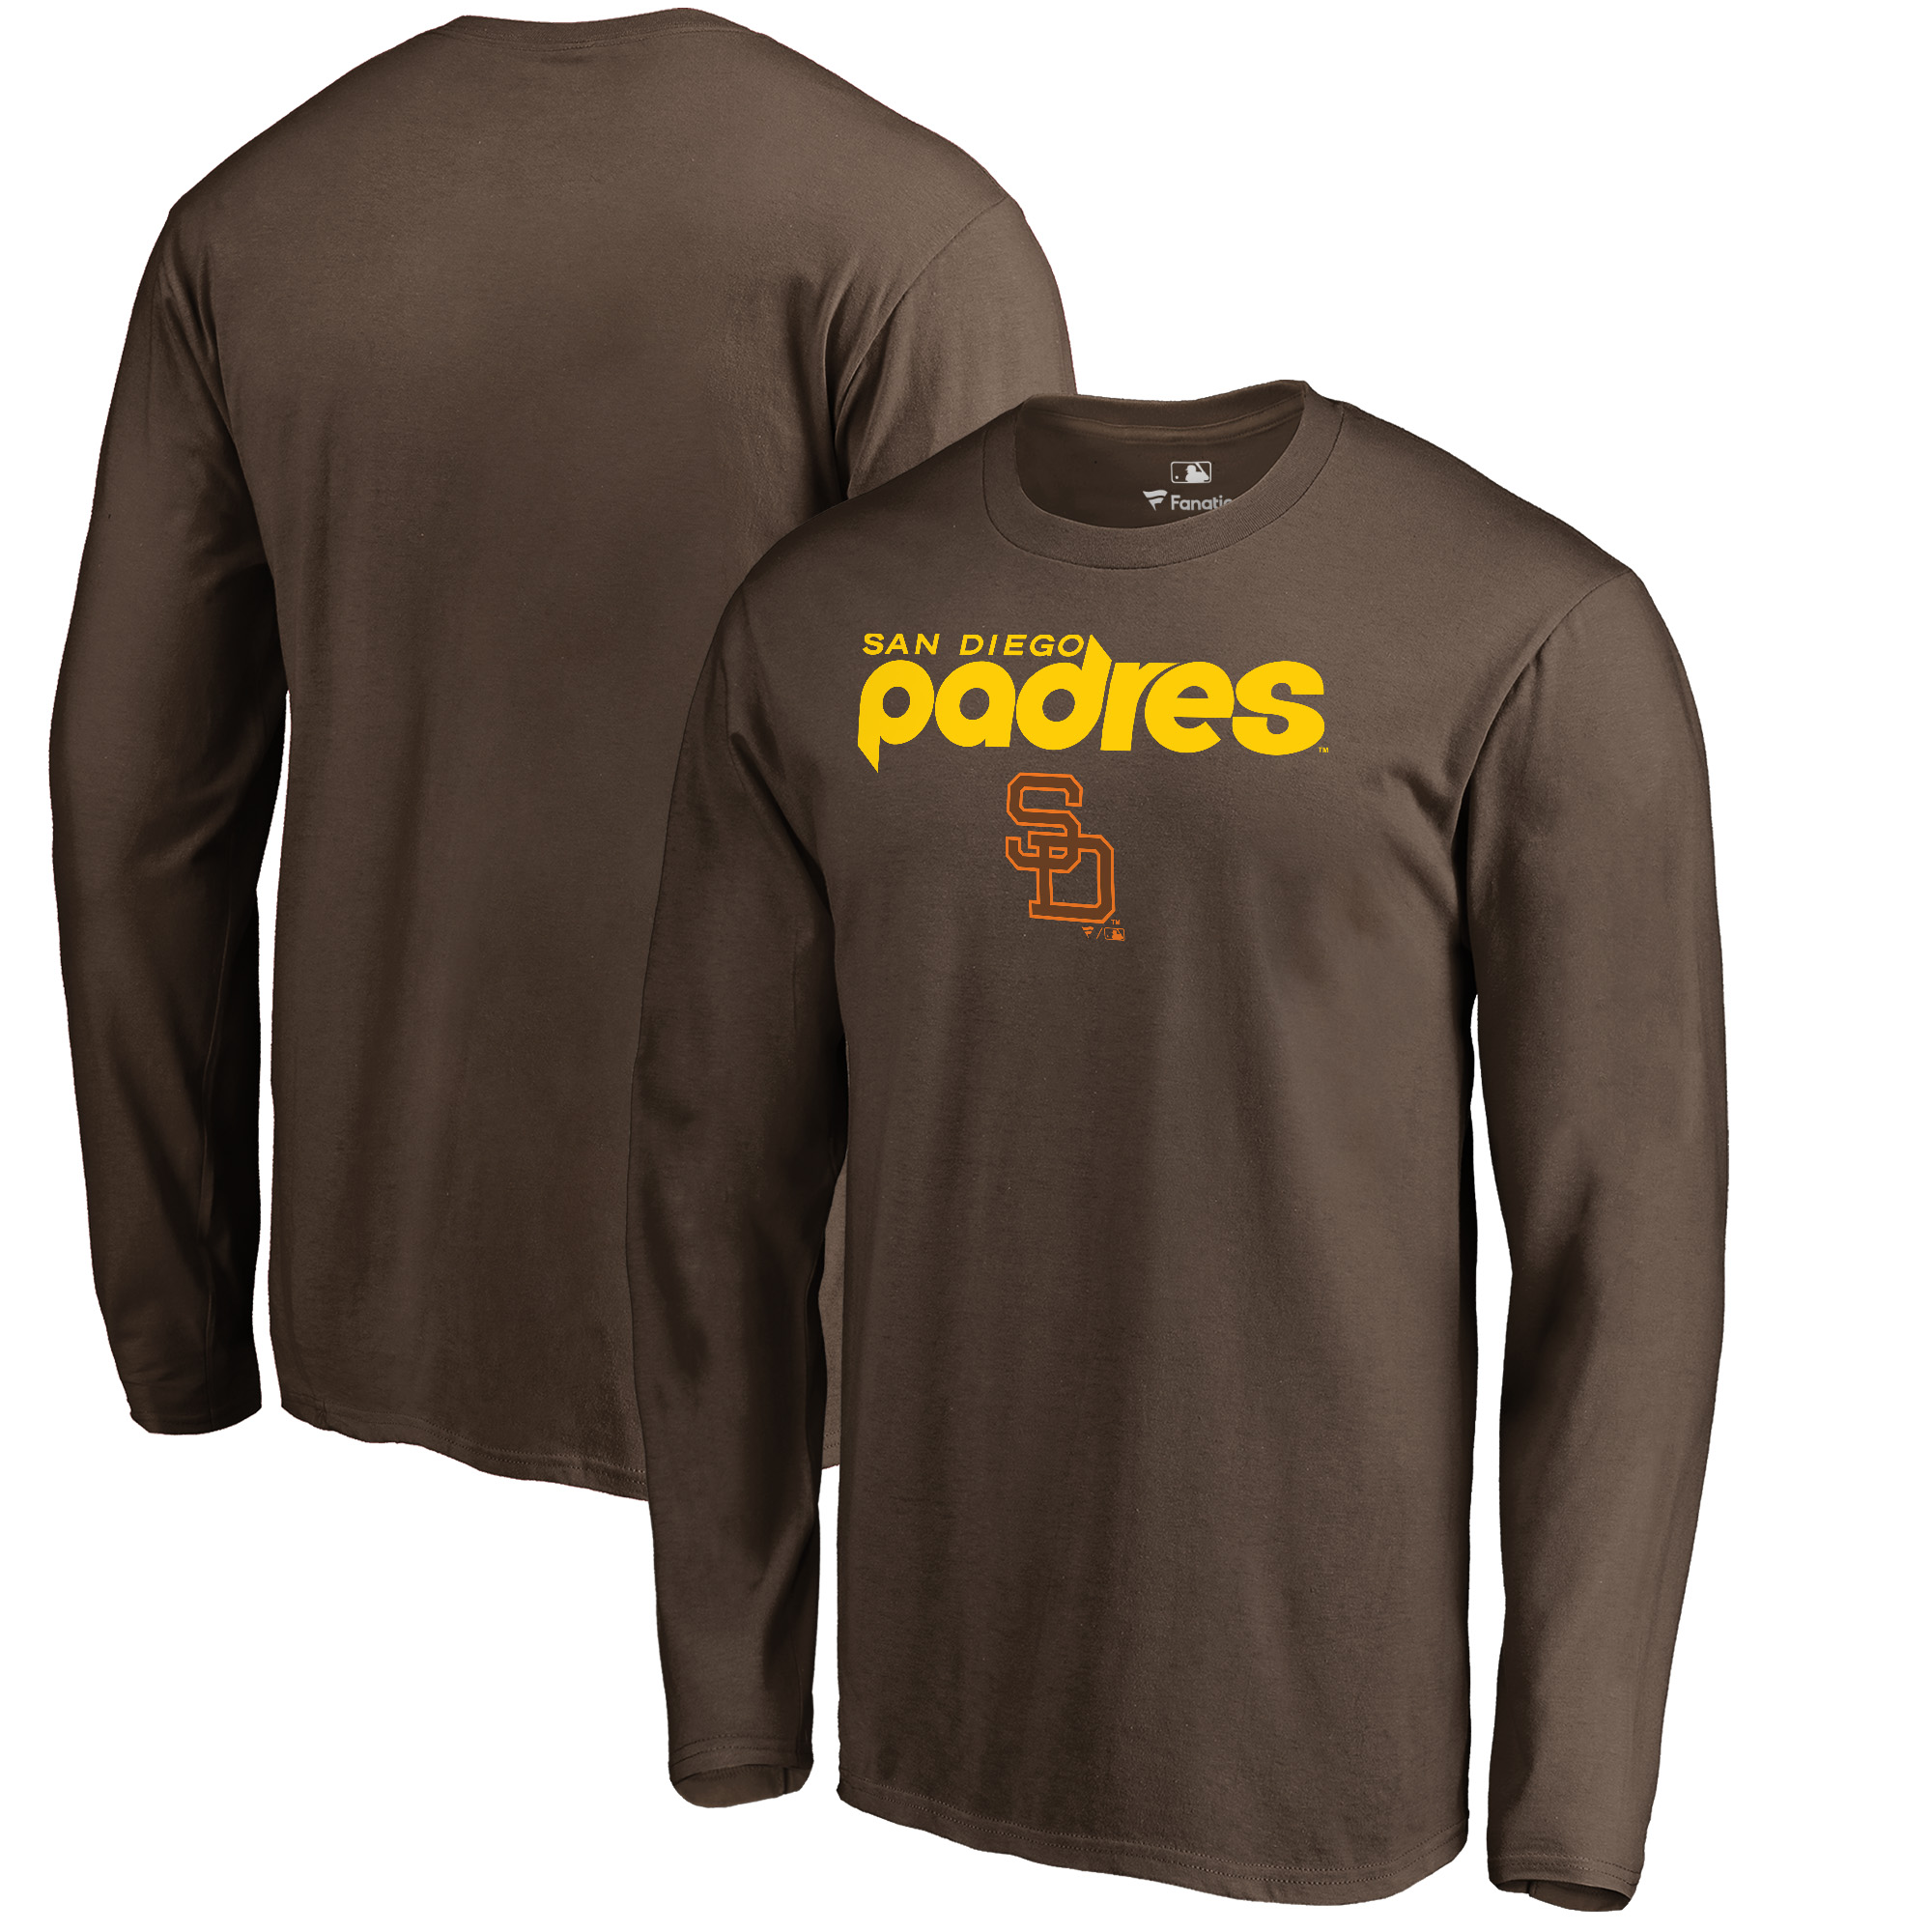 San Diego Padres Fanatics Branded Cooperstown Collection Wahconah Long Sleeve T-Shirt - Brown - L